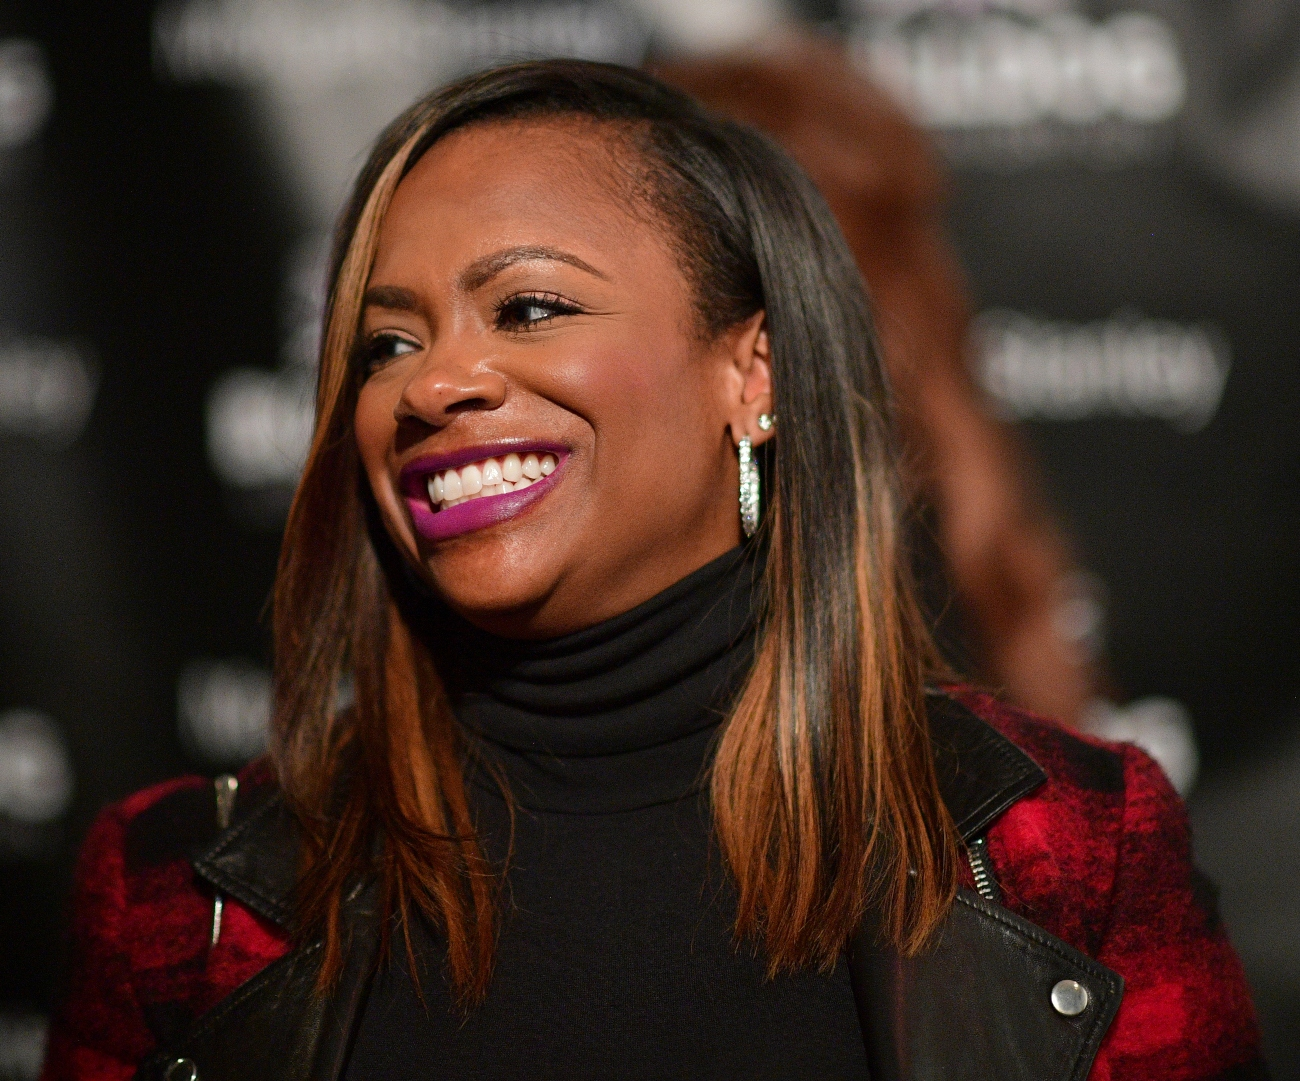 Kandi Burruss Misses The Masked Singer - Check Out Some Gorgeous Throwback Photos From The Show